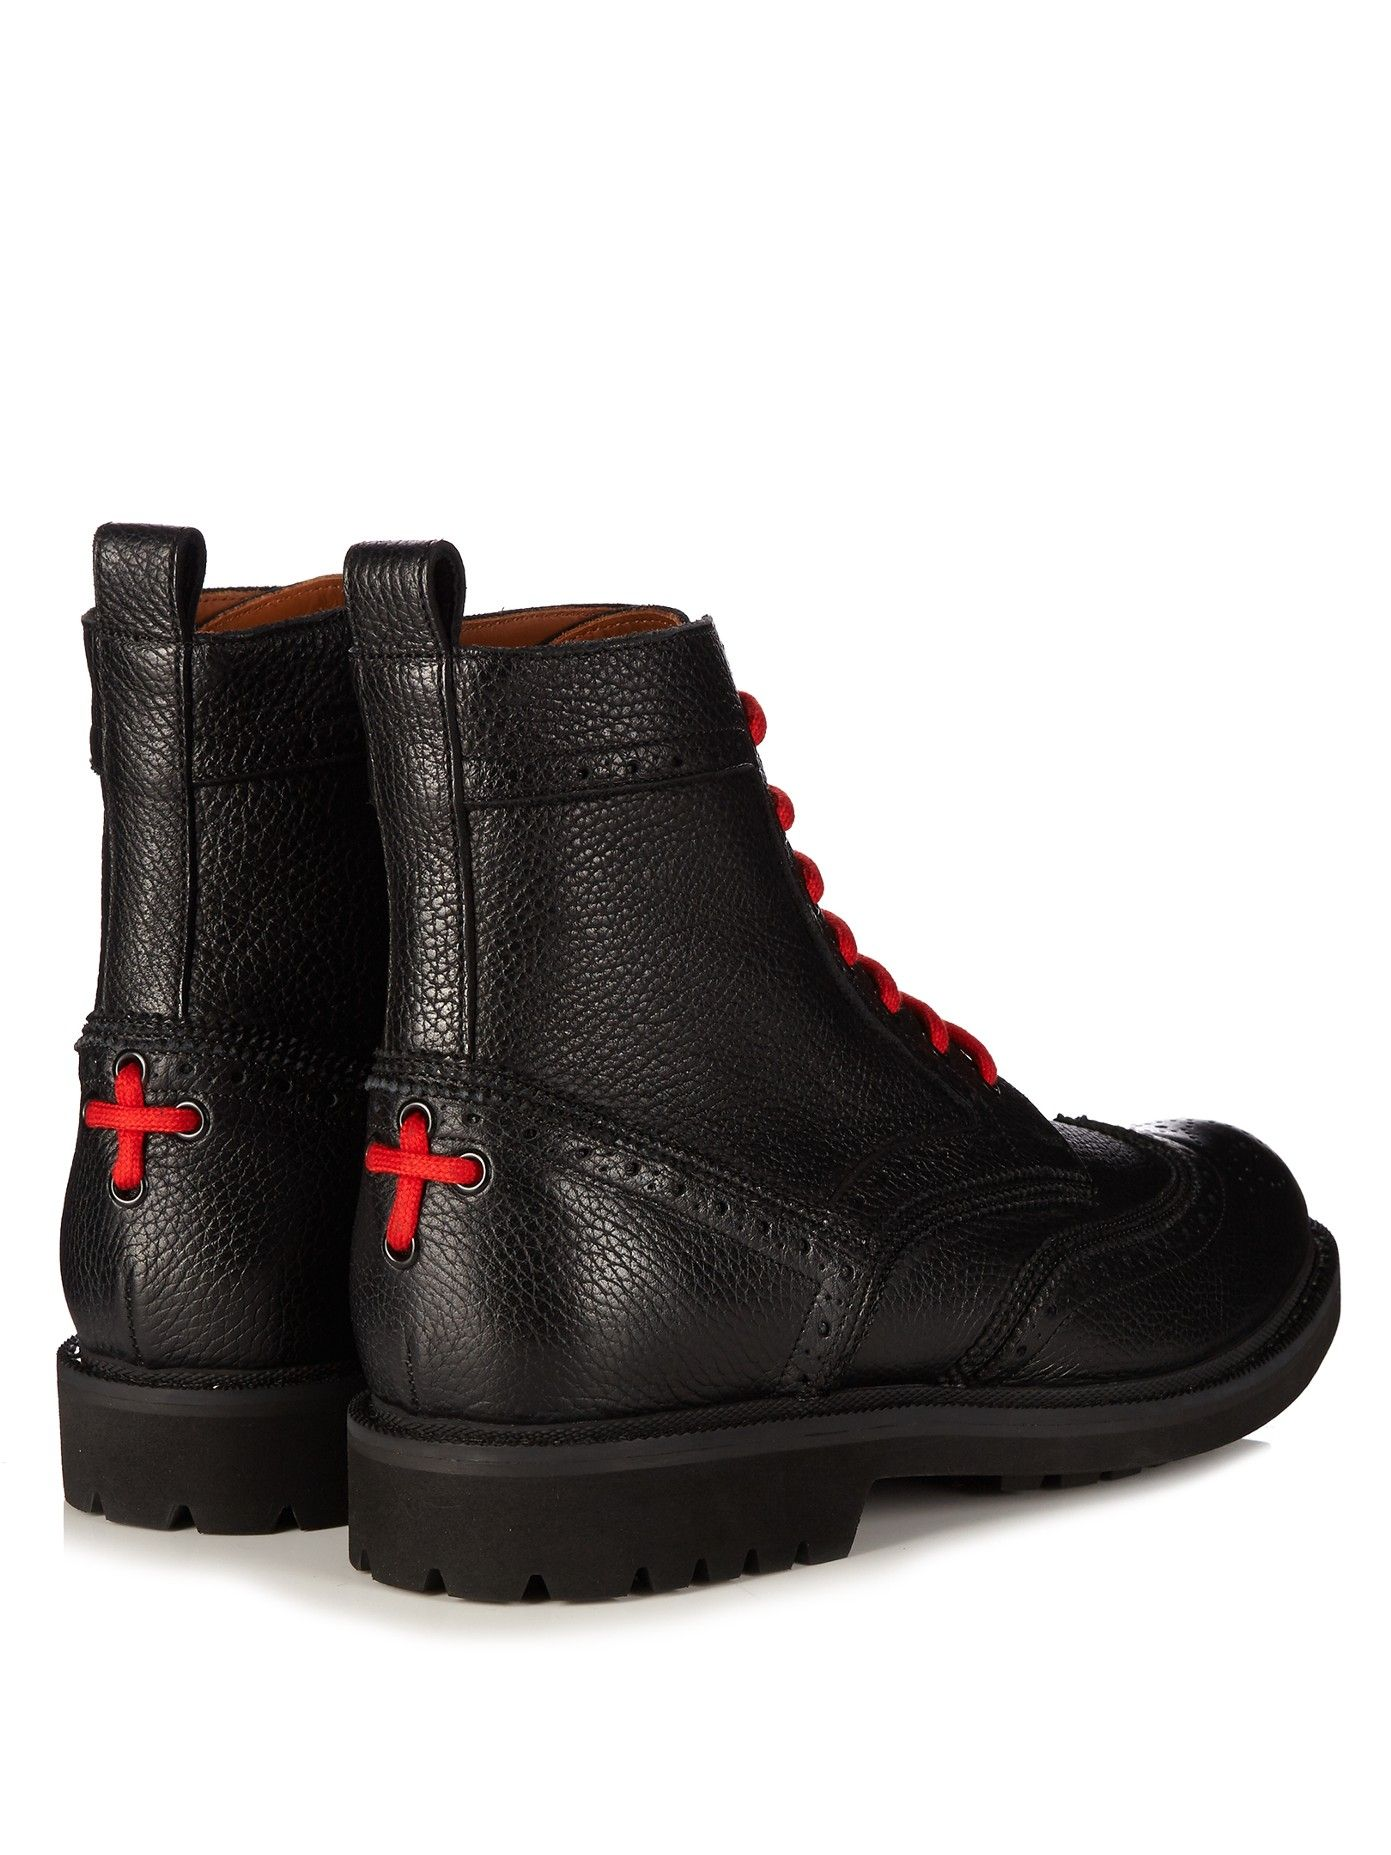 Commando leather ankle boots | Givenchy |